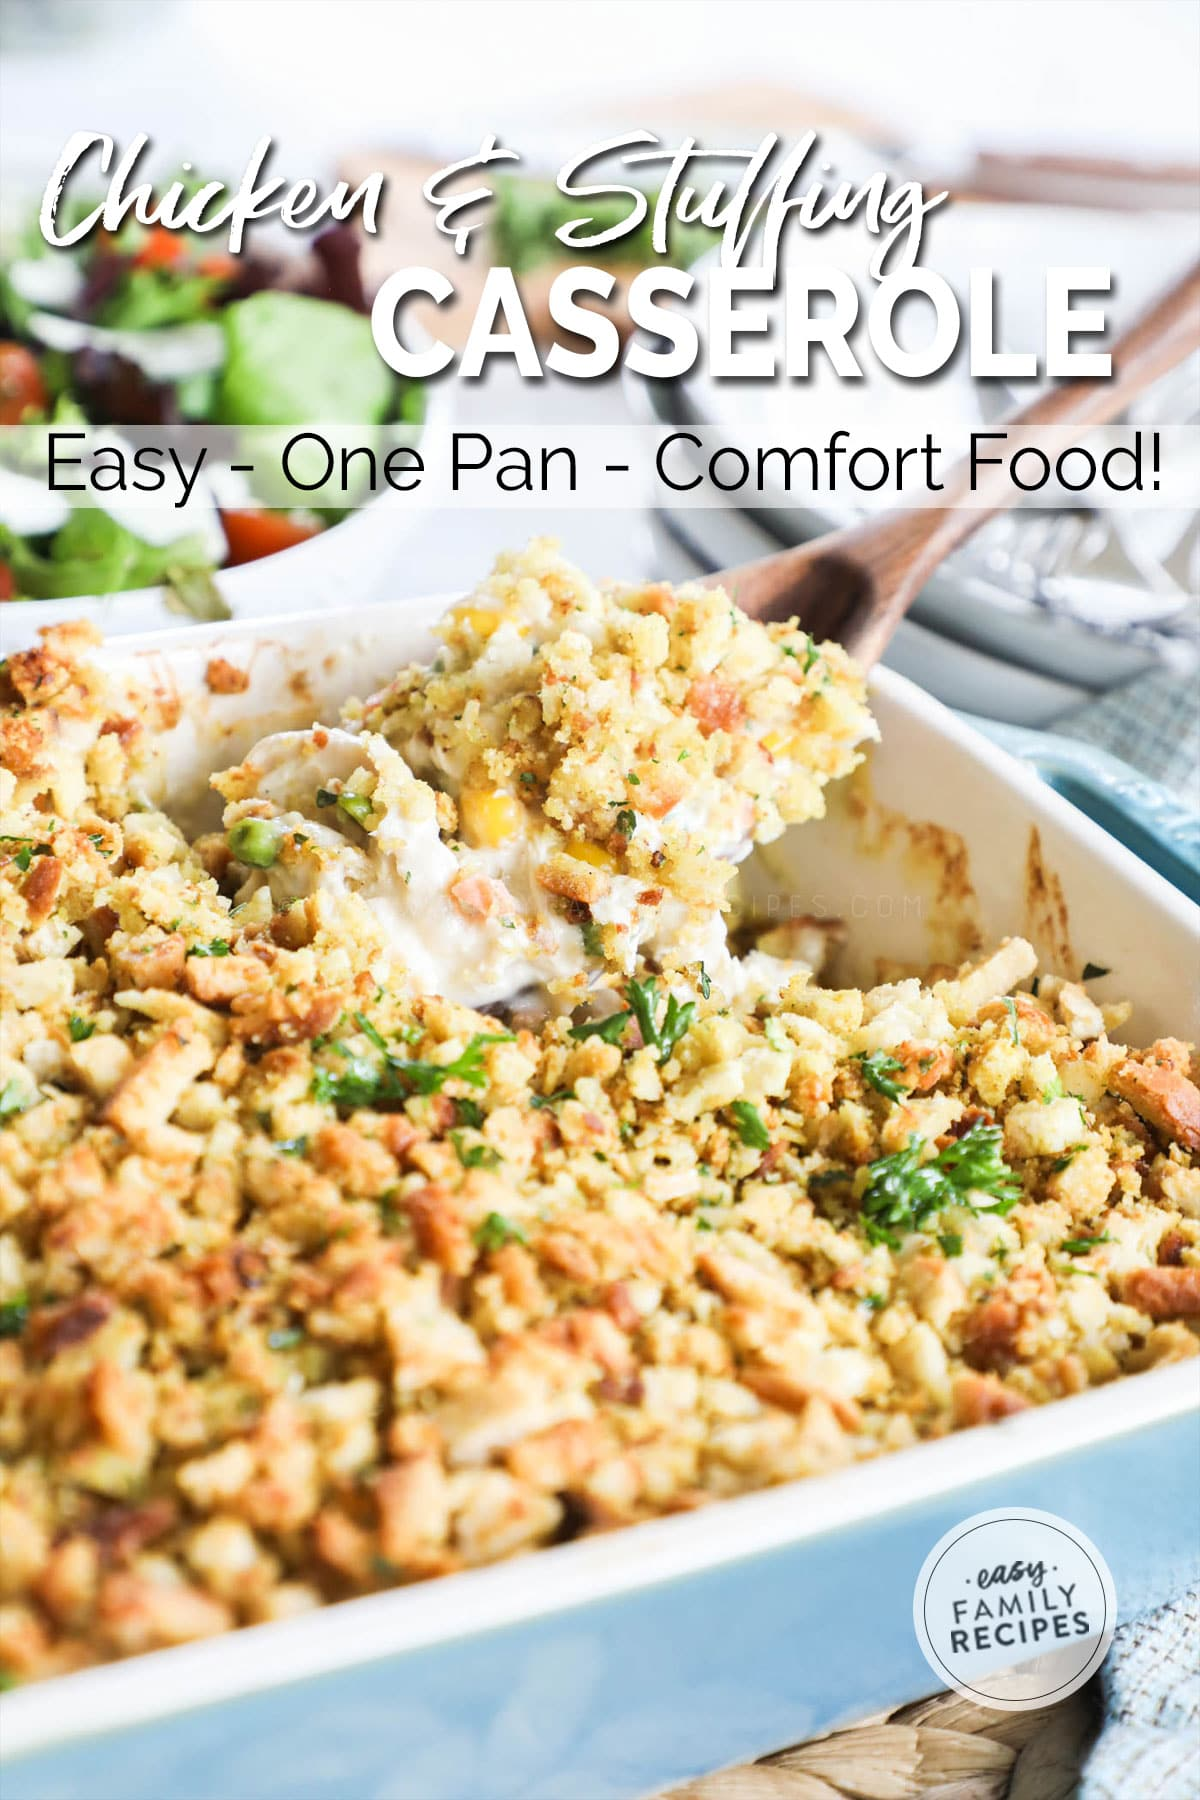 Creamy Chicken and Stuffing Casserole being served from casserole dish